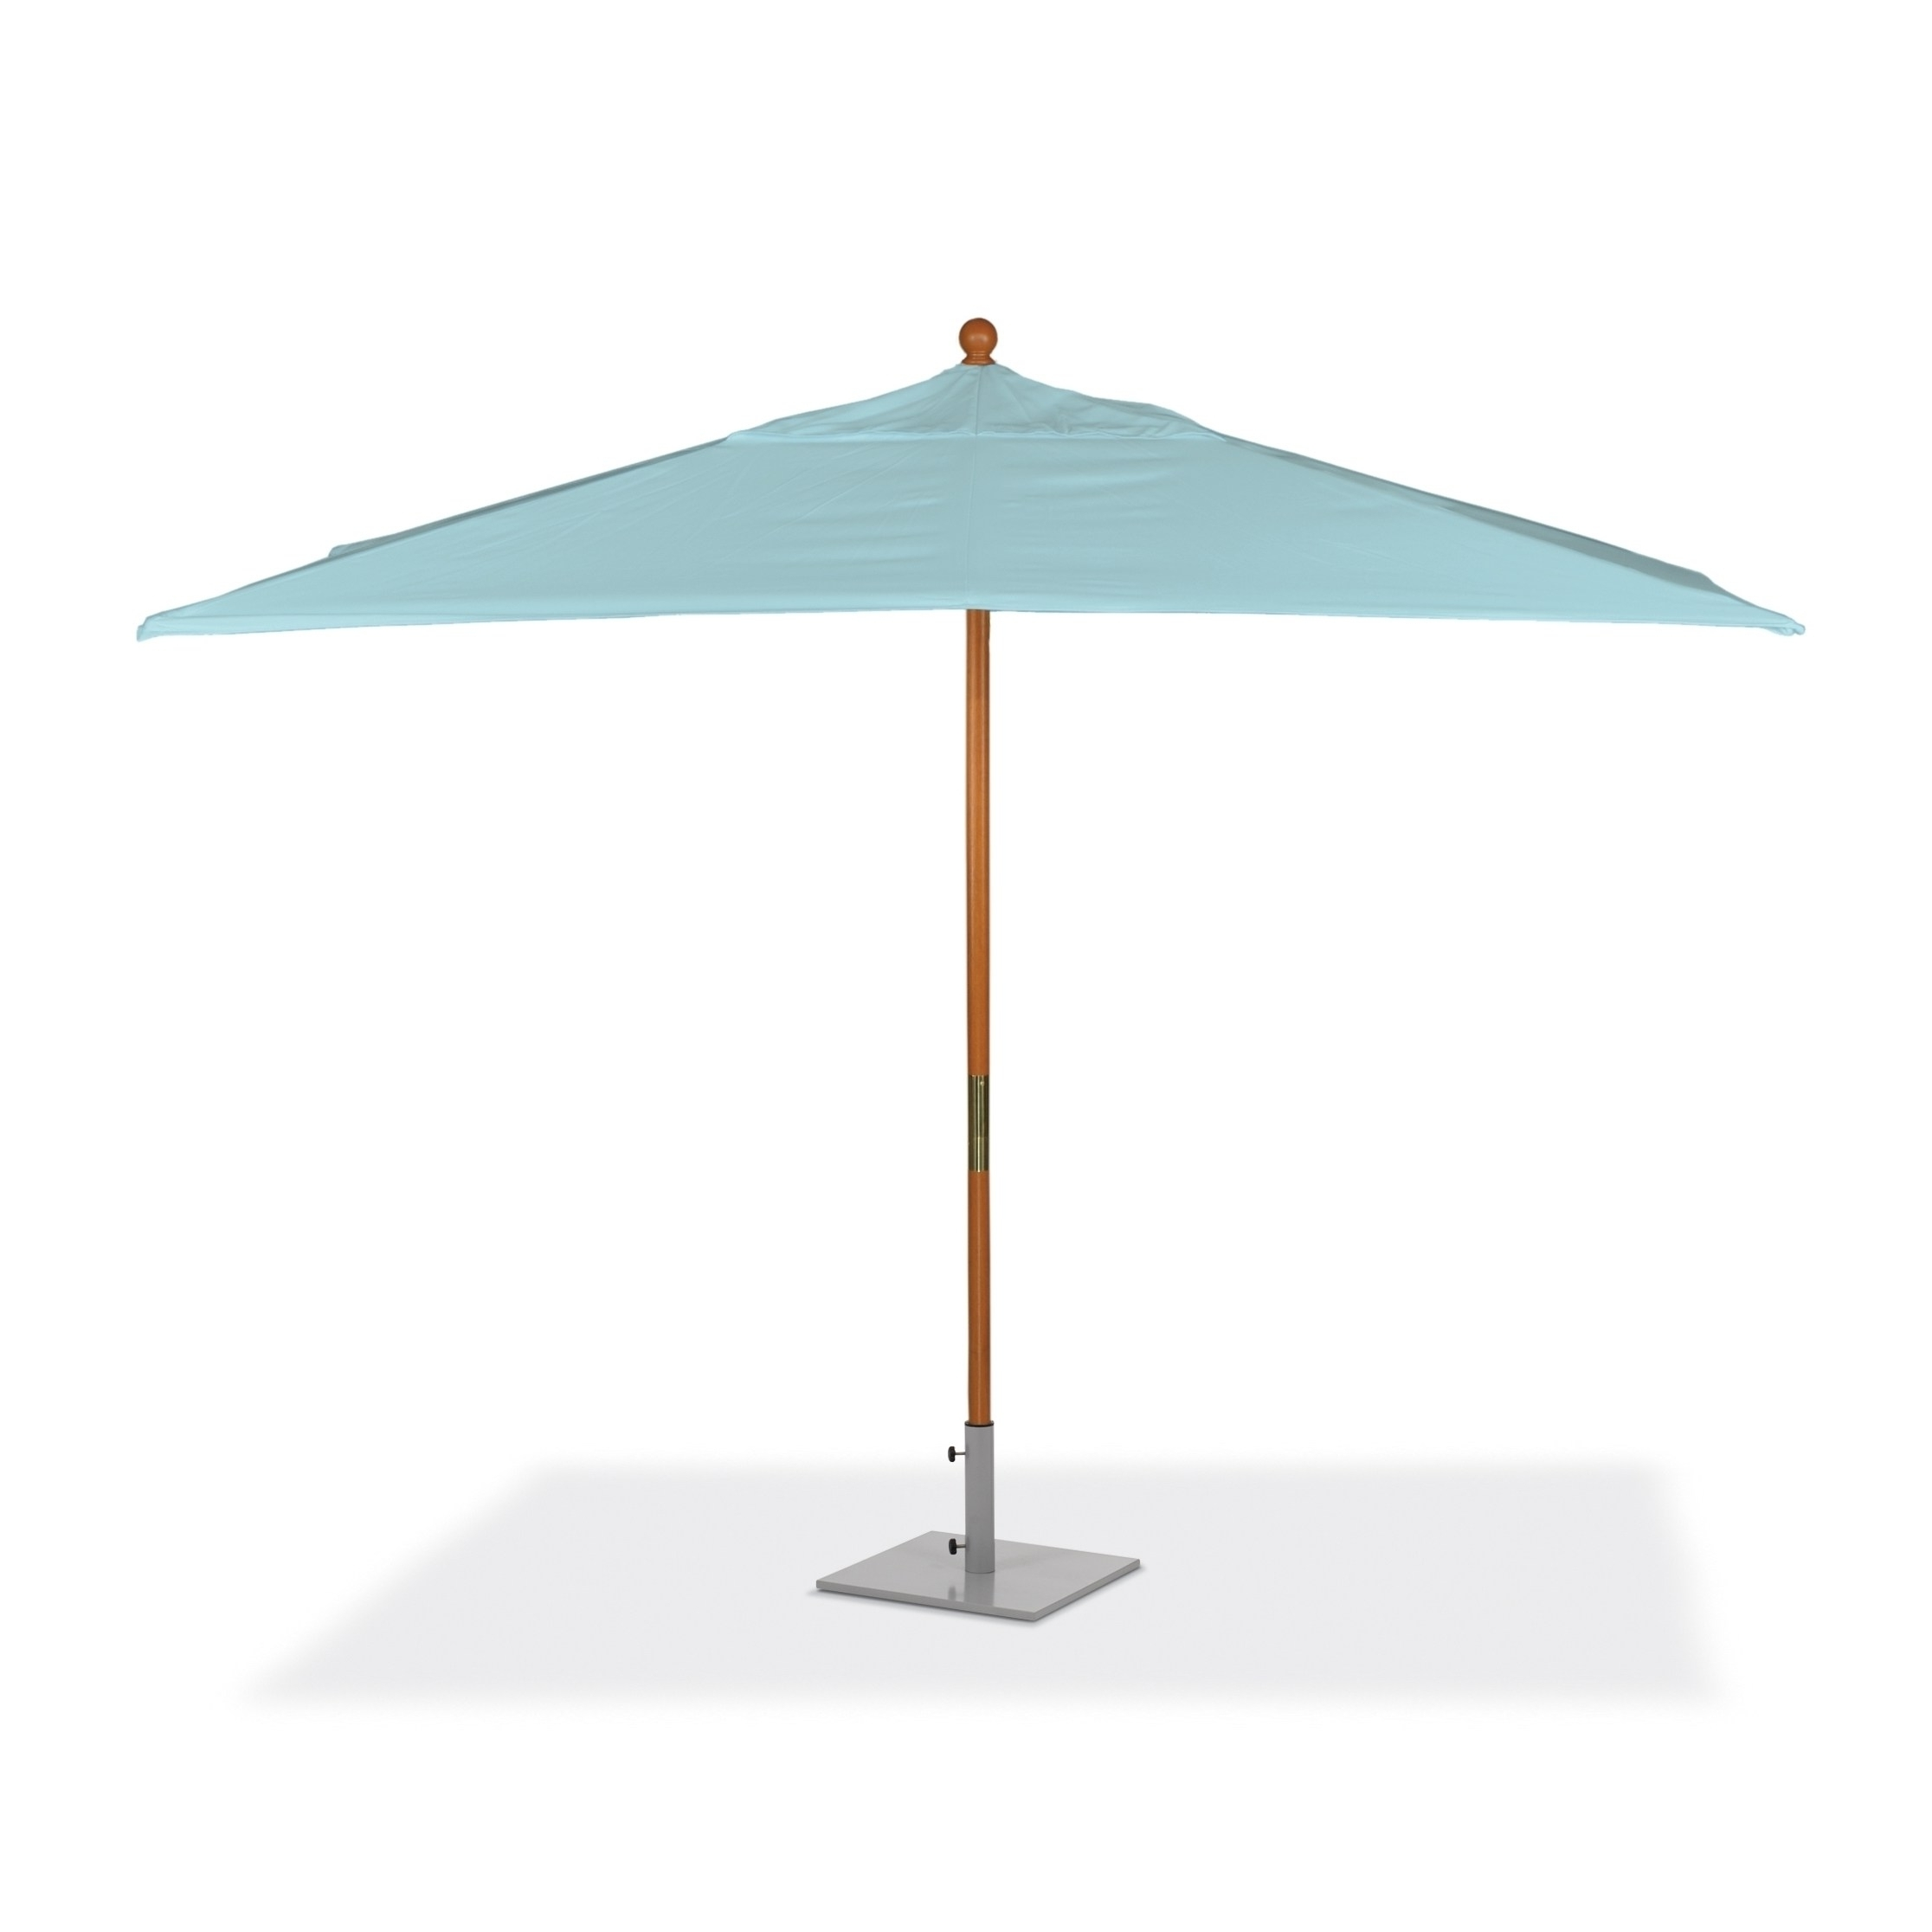 Famous Rectangular Sunbrella Patio Umbrellas With Regard To Shop Oxford Garden 10 Feet Rectangular Mineral Blue Sunbrella Fabric (Gallery 17 of 20)